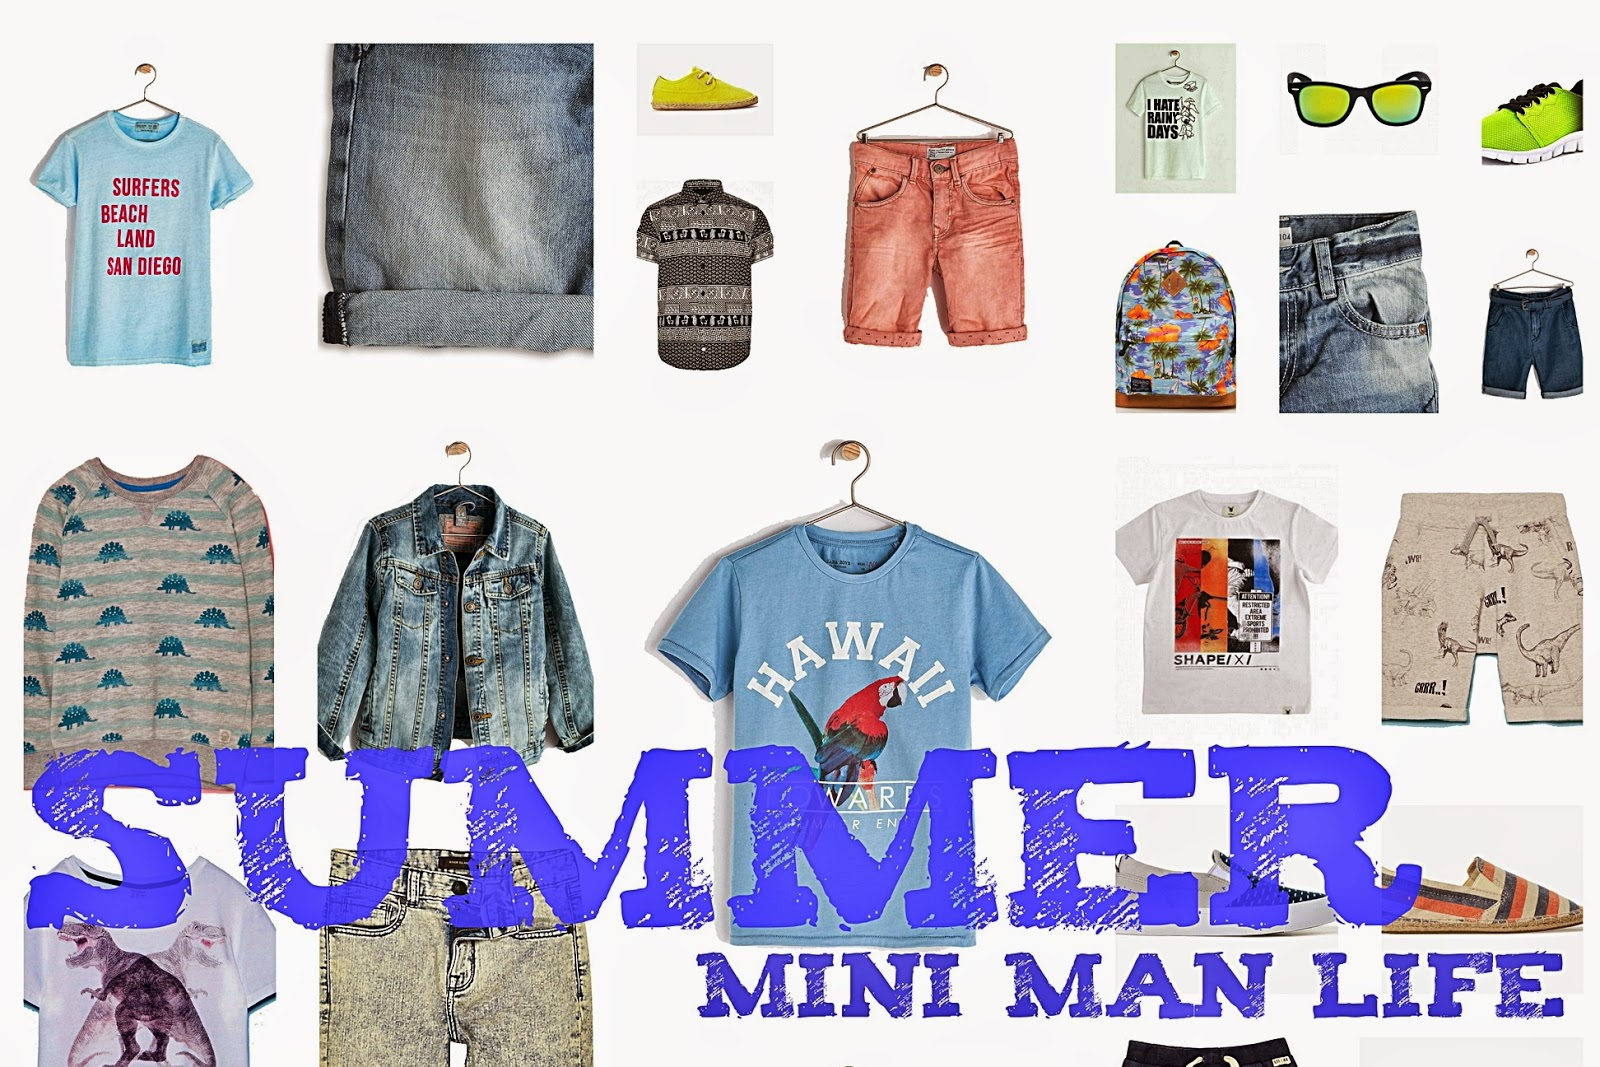 http://minimanlife.blogspot.com/2014/06/must-have-summer.html